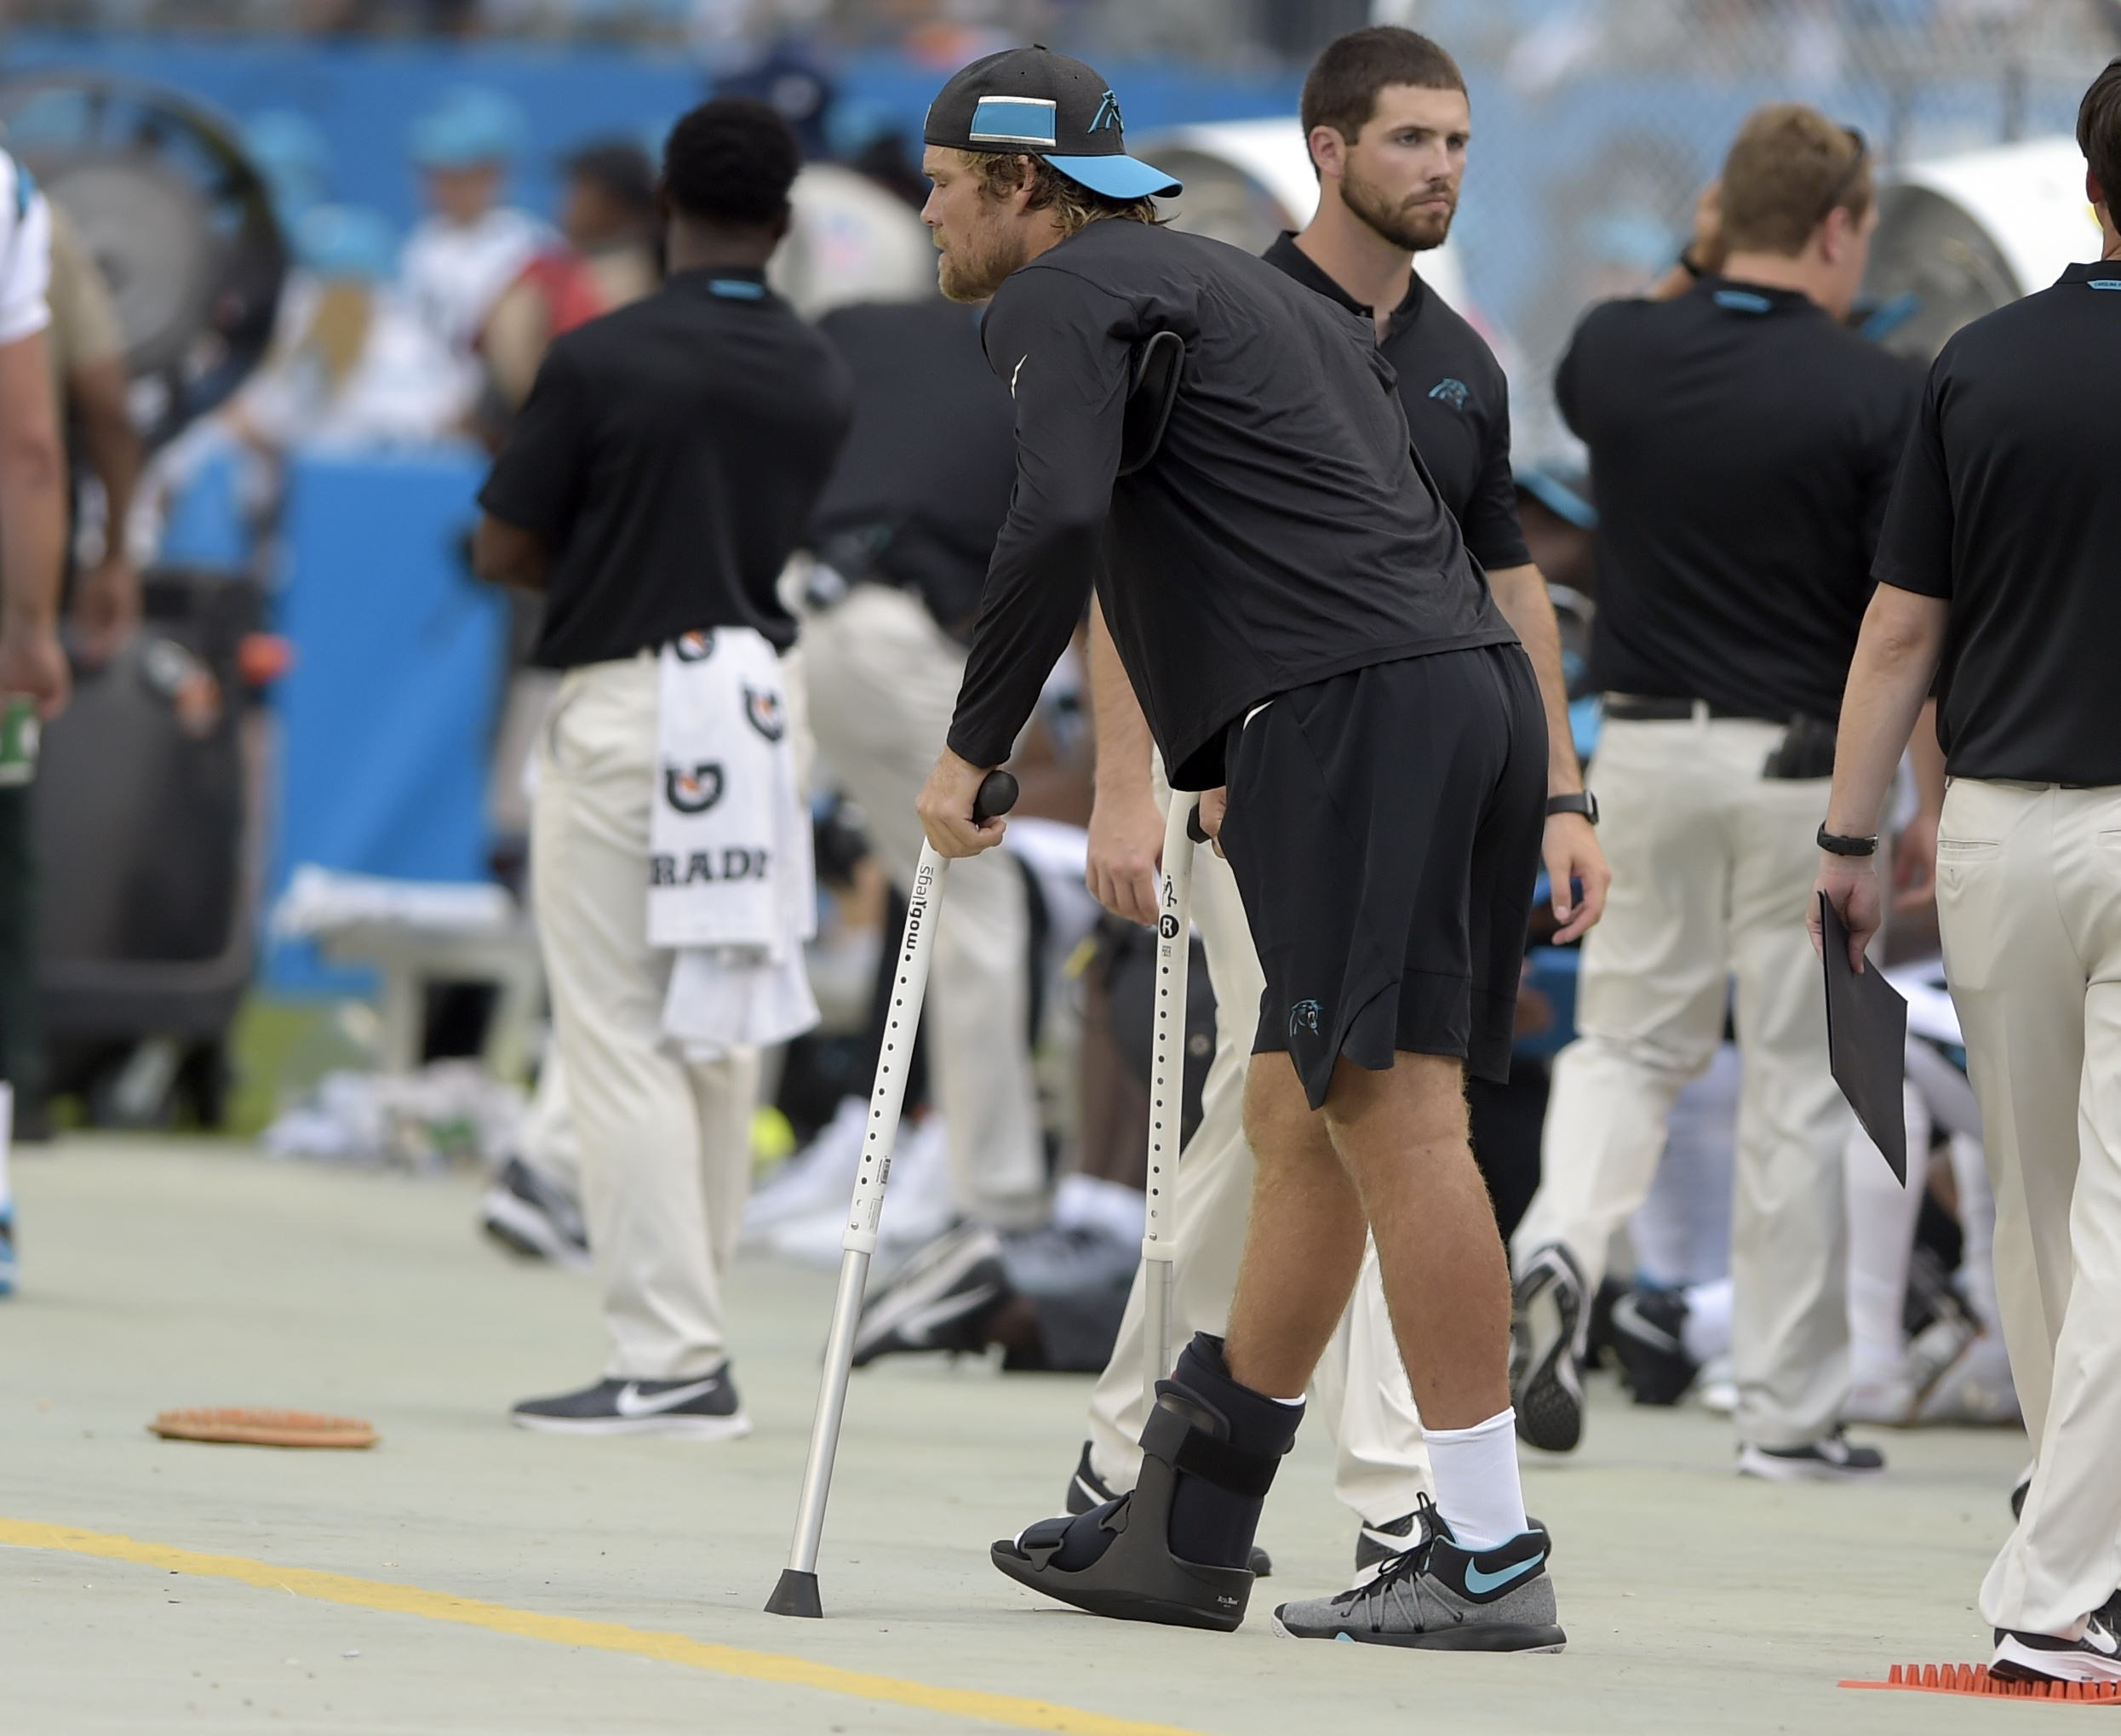 Panthers' Olsen breaks foot; Williams will need surgery